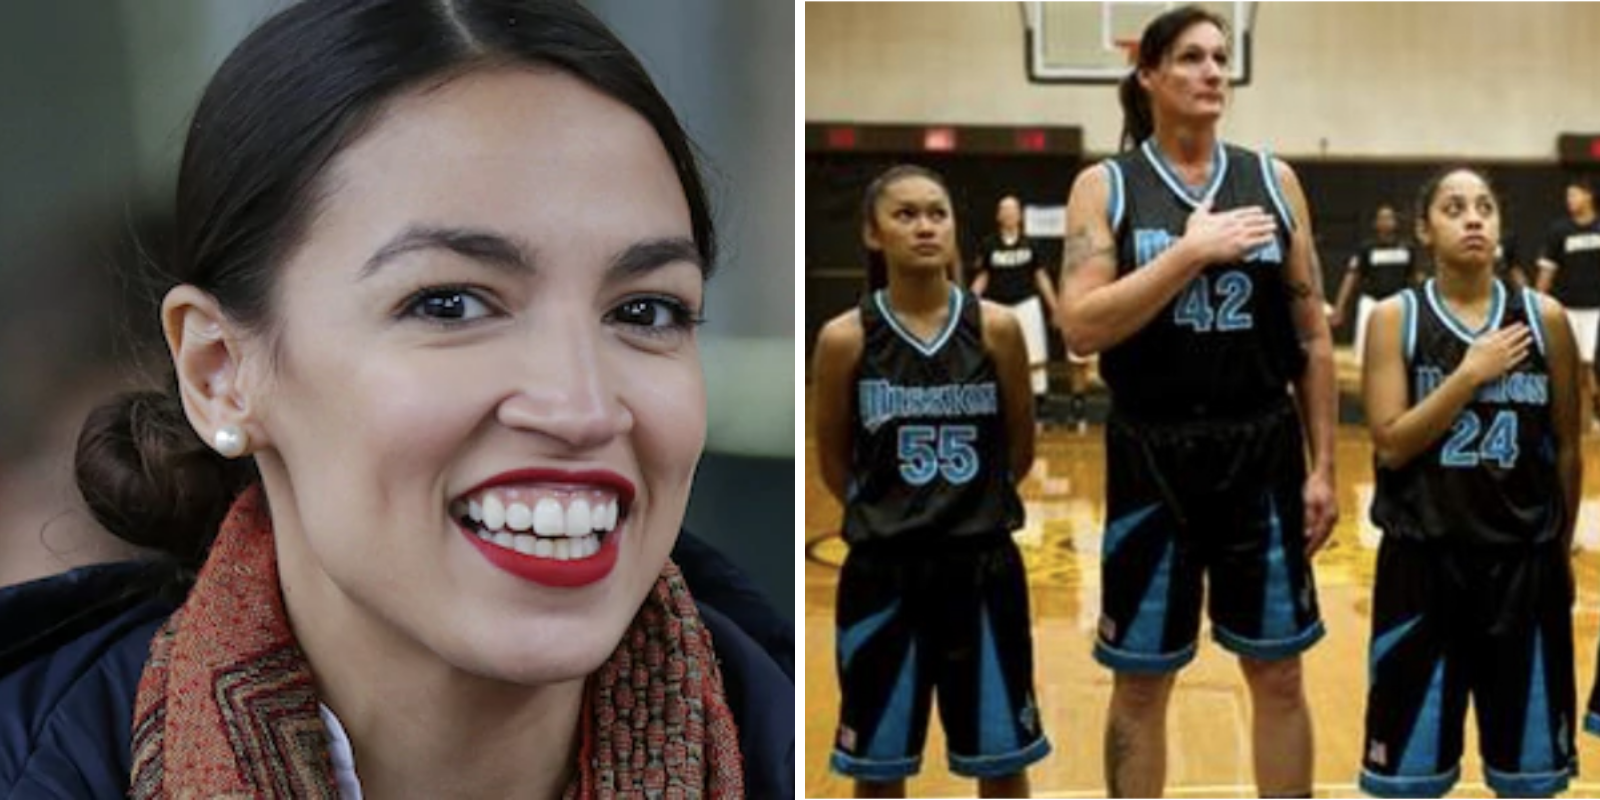 AOC claims 'trans kids are awesome' as she advocates for allowing biological males in young girls' sports